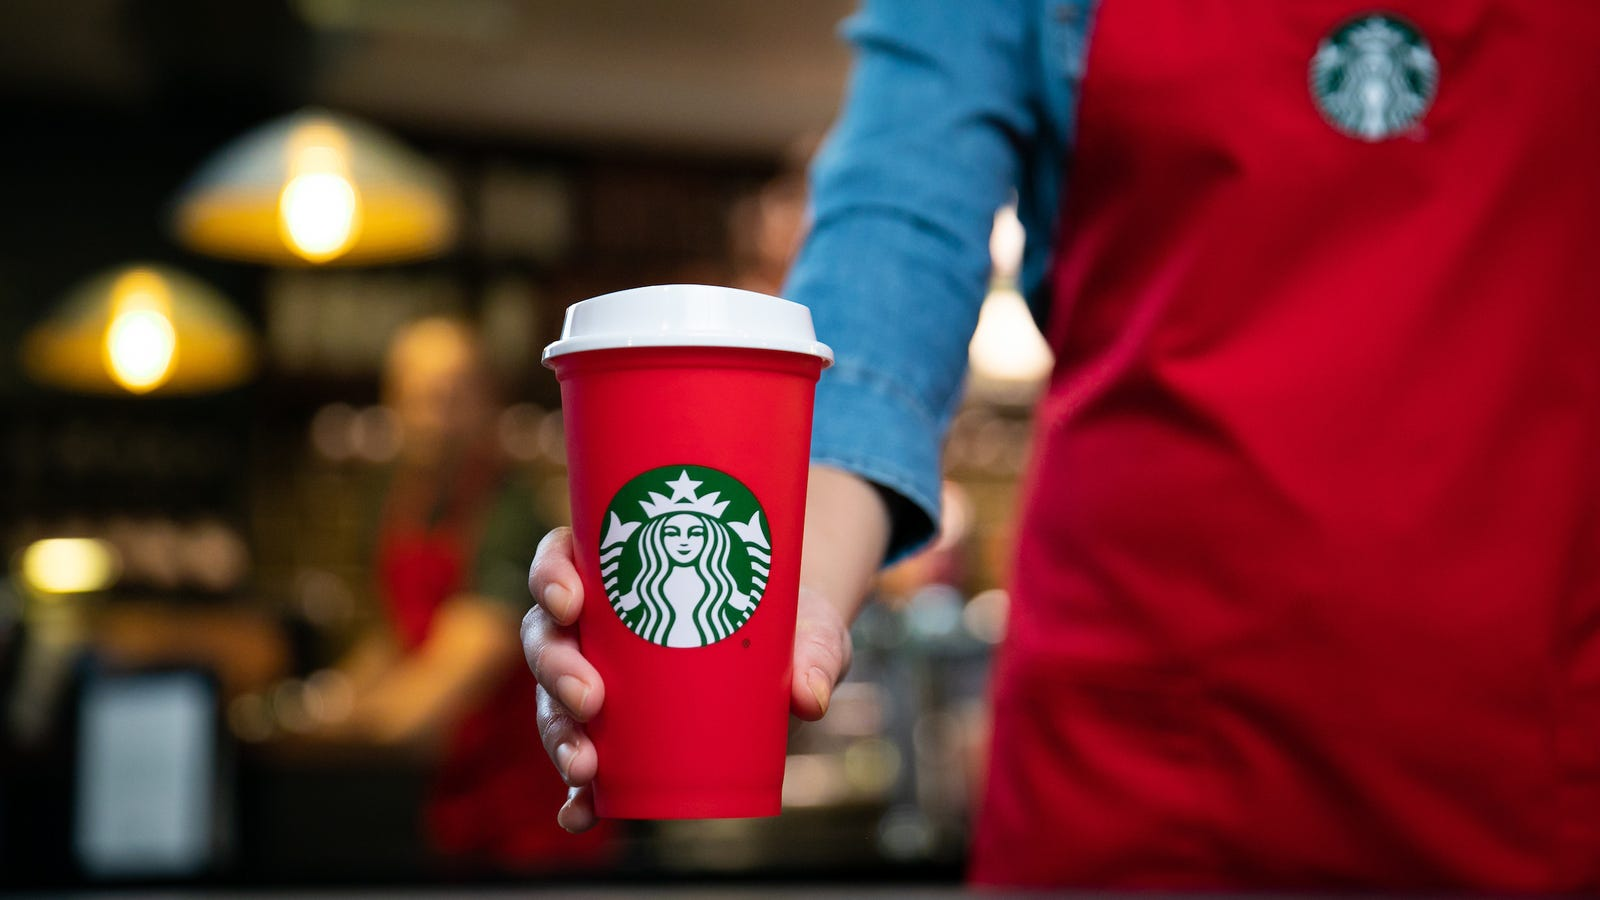 How to Order at Starbucks so Baristas Don't Judge You